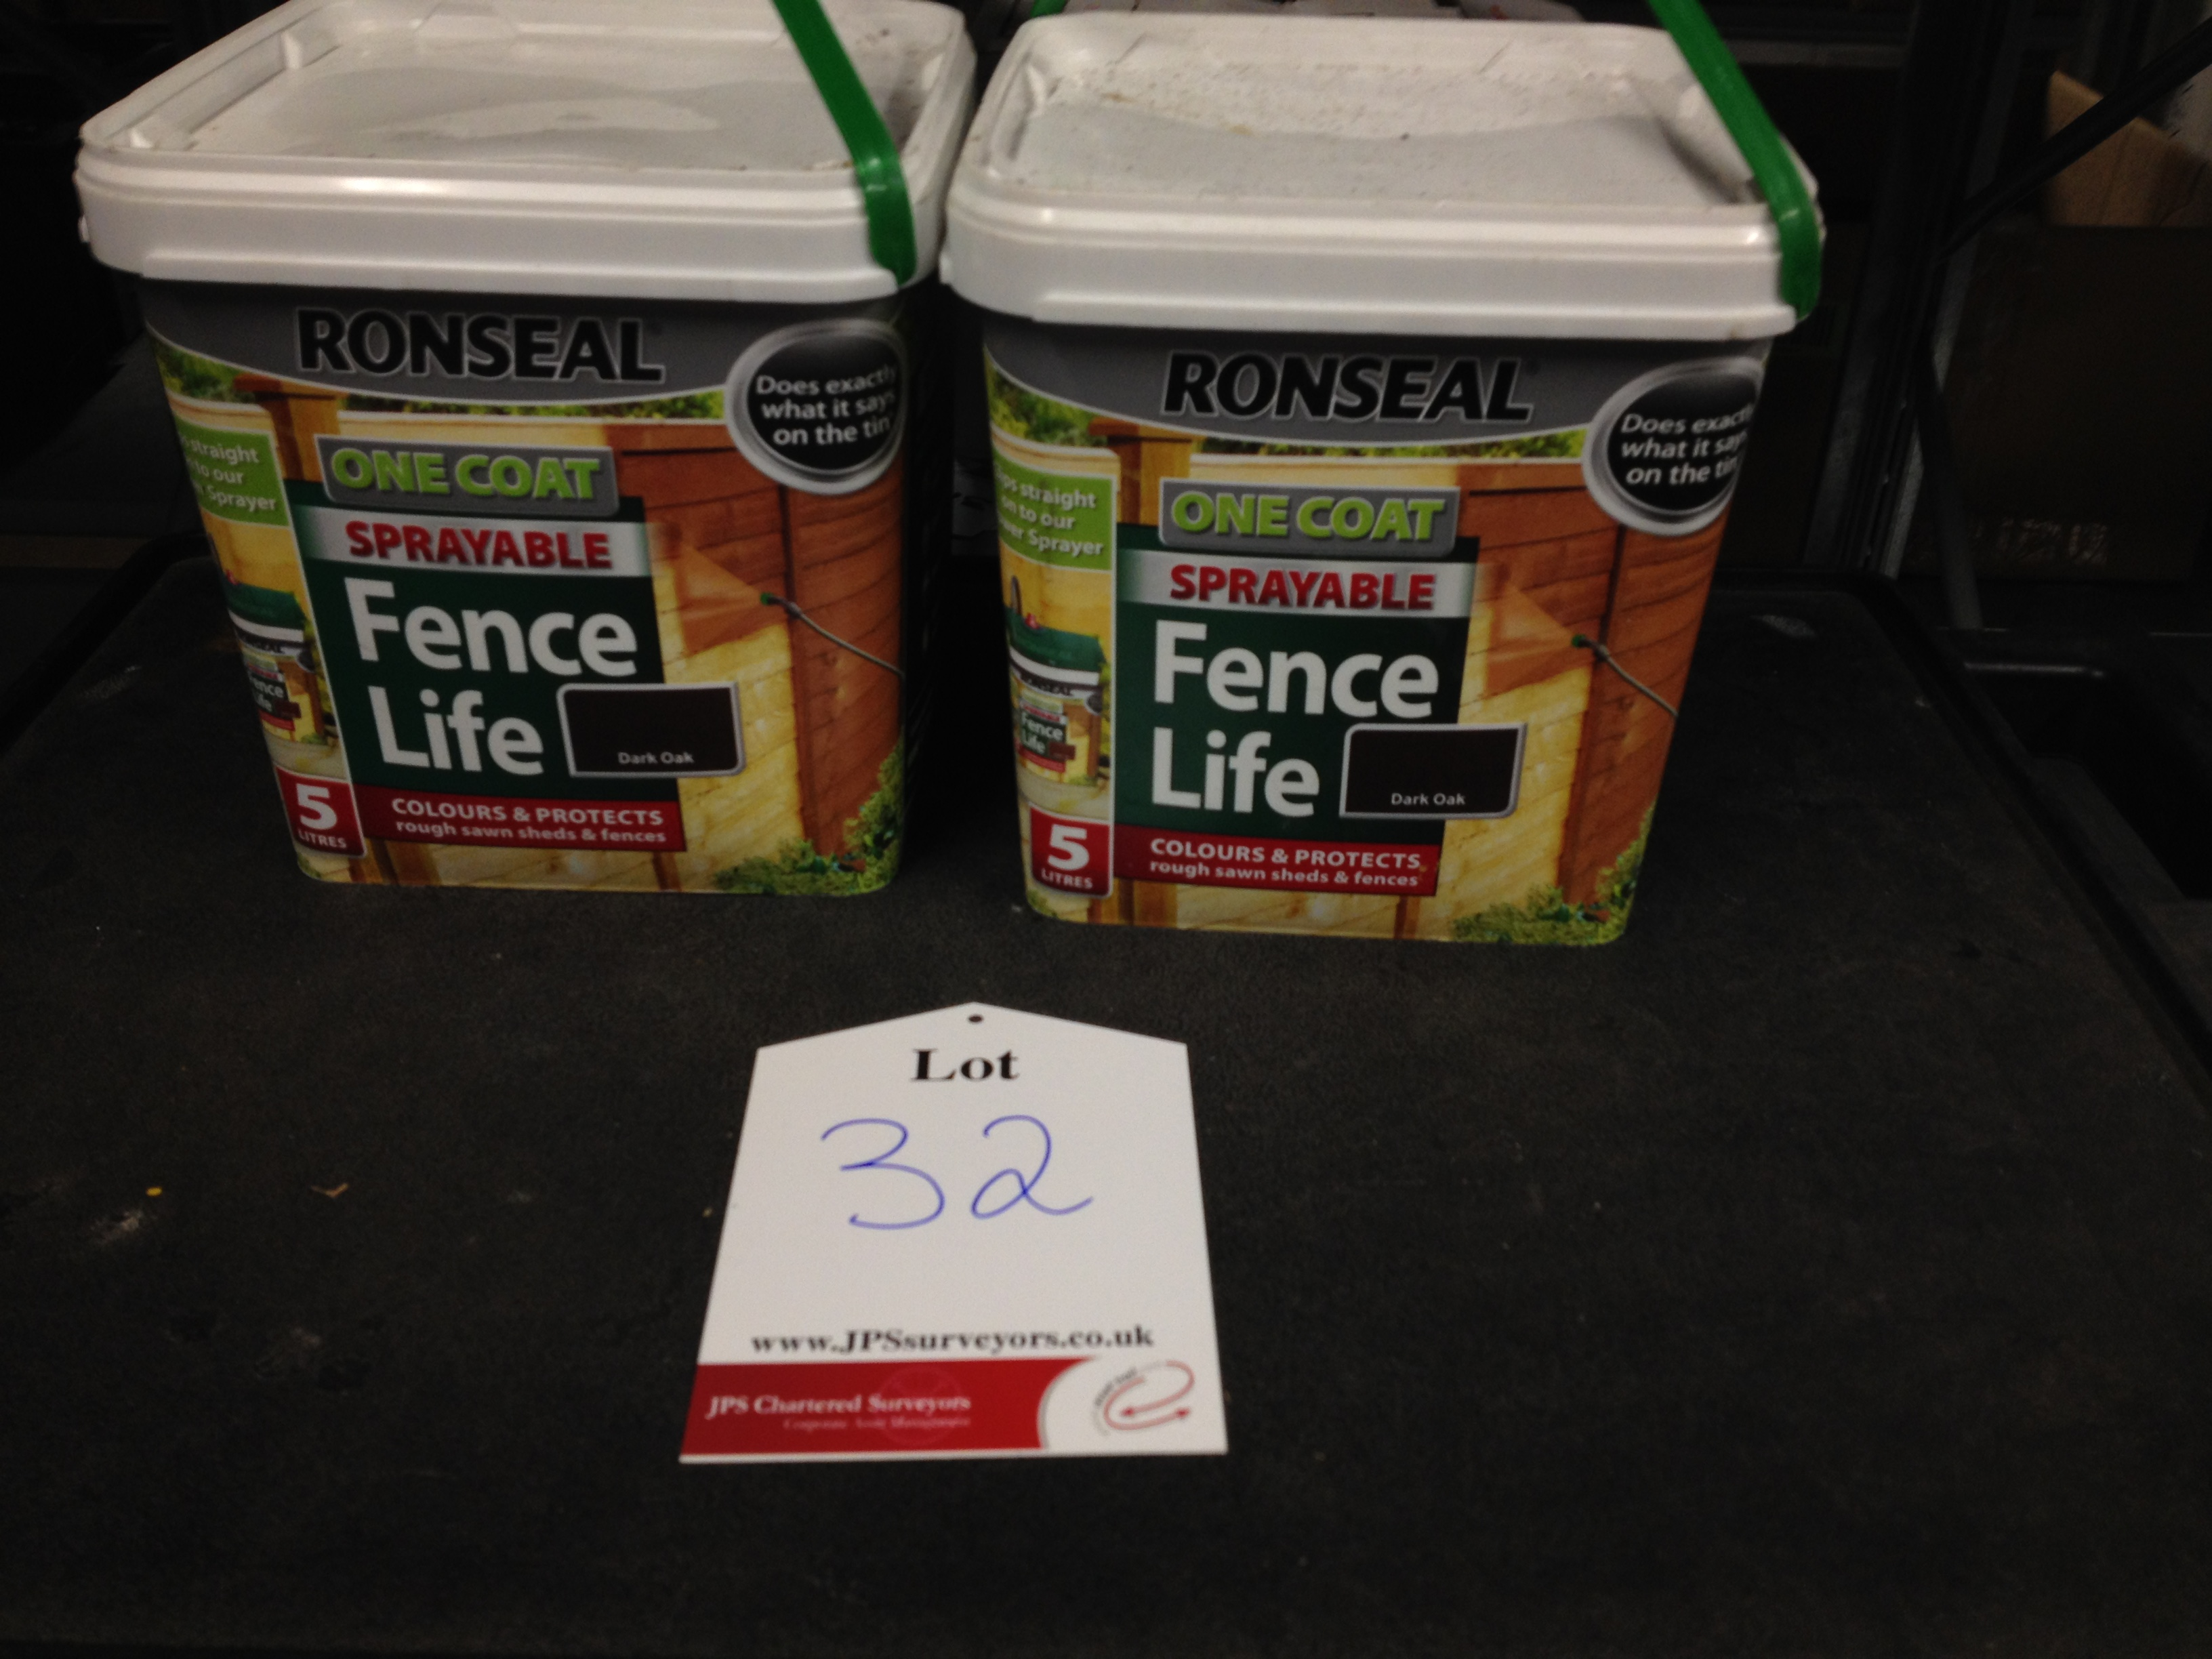 2 X 5 Litres of Ronseal one coat sprayable fence life paint. Colour - Dark Oak - Image 2 of 4